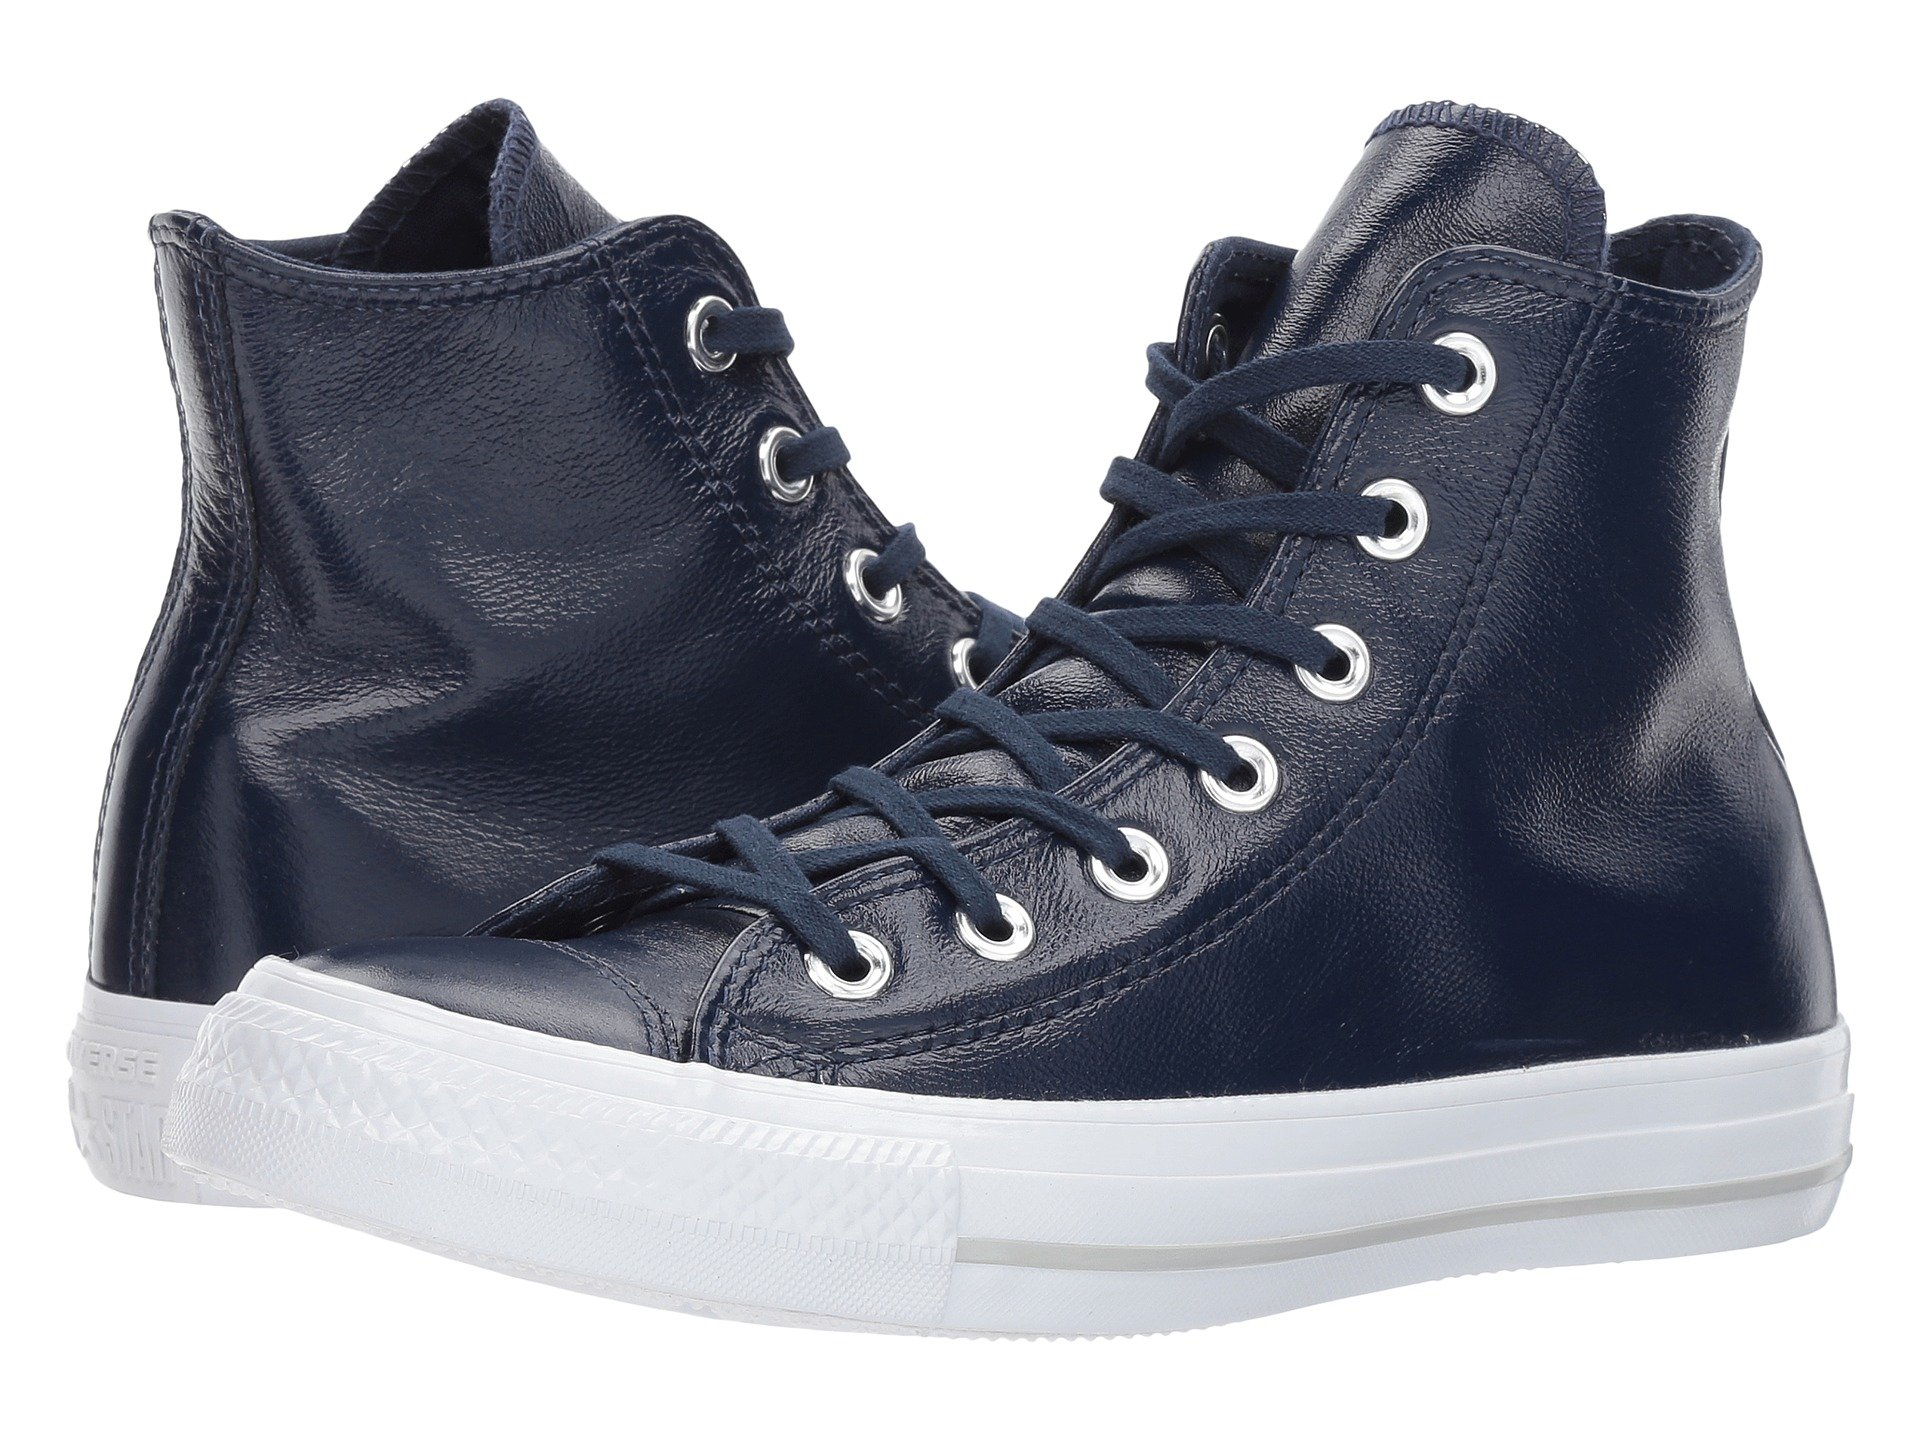 250b9417f209f6 CONVERSE CHUCK TAYLOR® ALL STAR® CRINKLED PATENT LEATHER HI ...